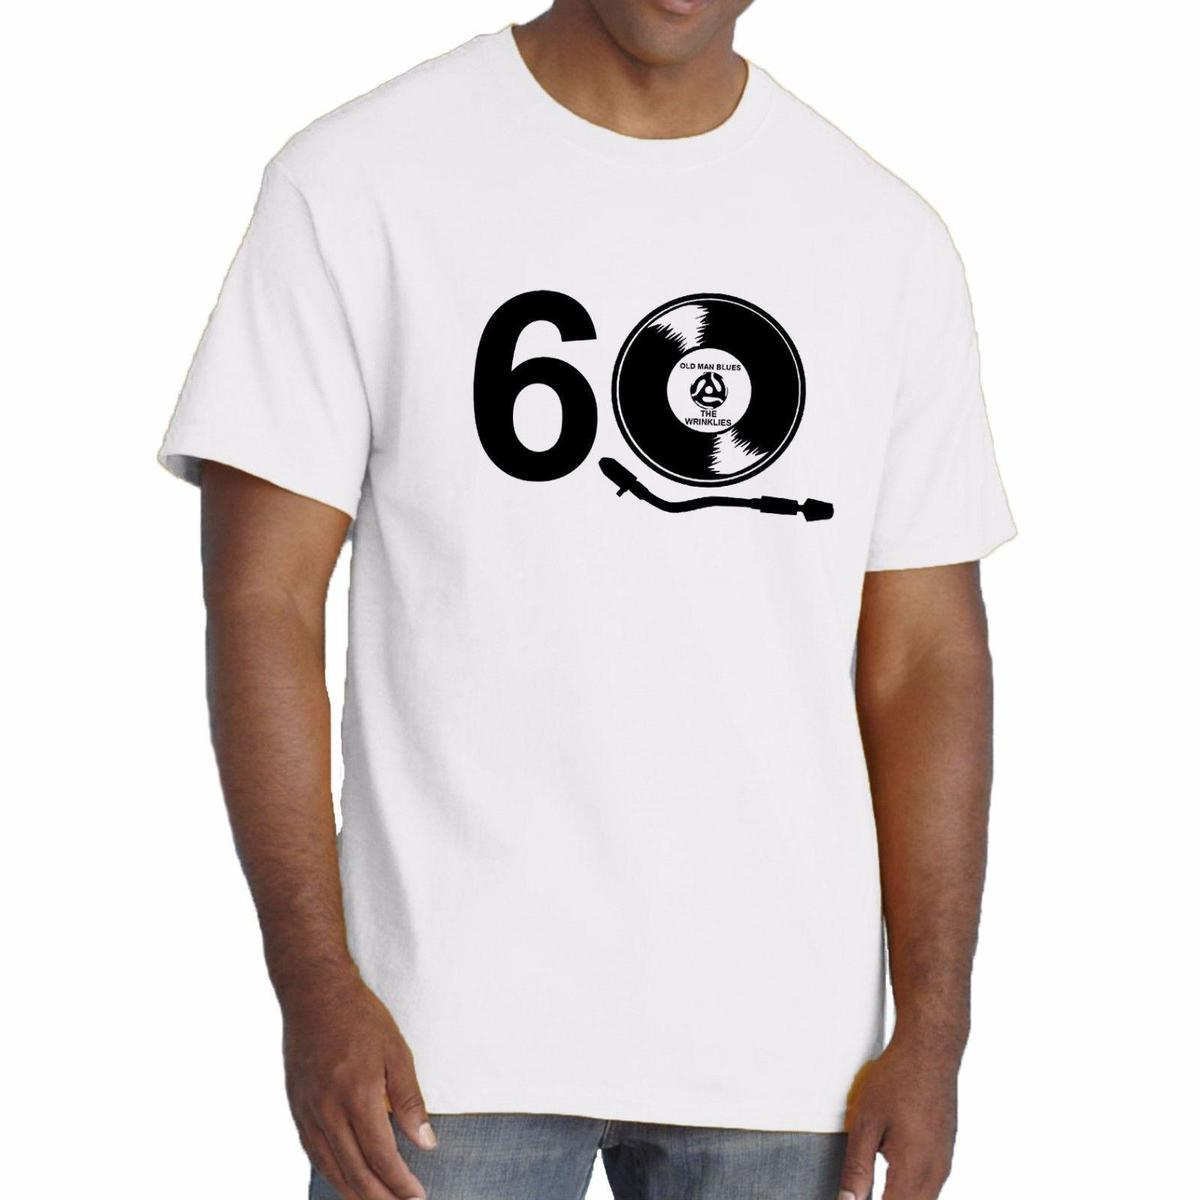 Birthday T Shirt 40th 50th 60th Vinyl Record Old Man Girl Blues THE WRINKLIES Design Shirts Casual From Linnan00004 1294